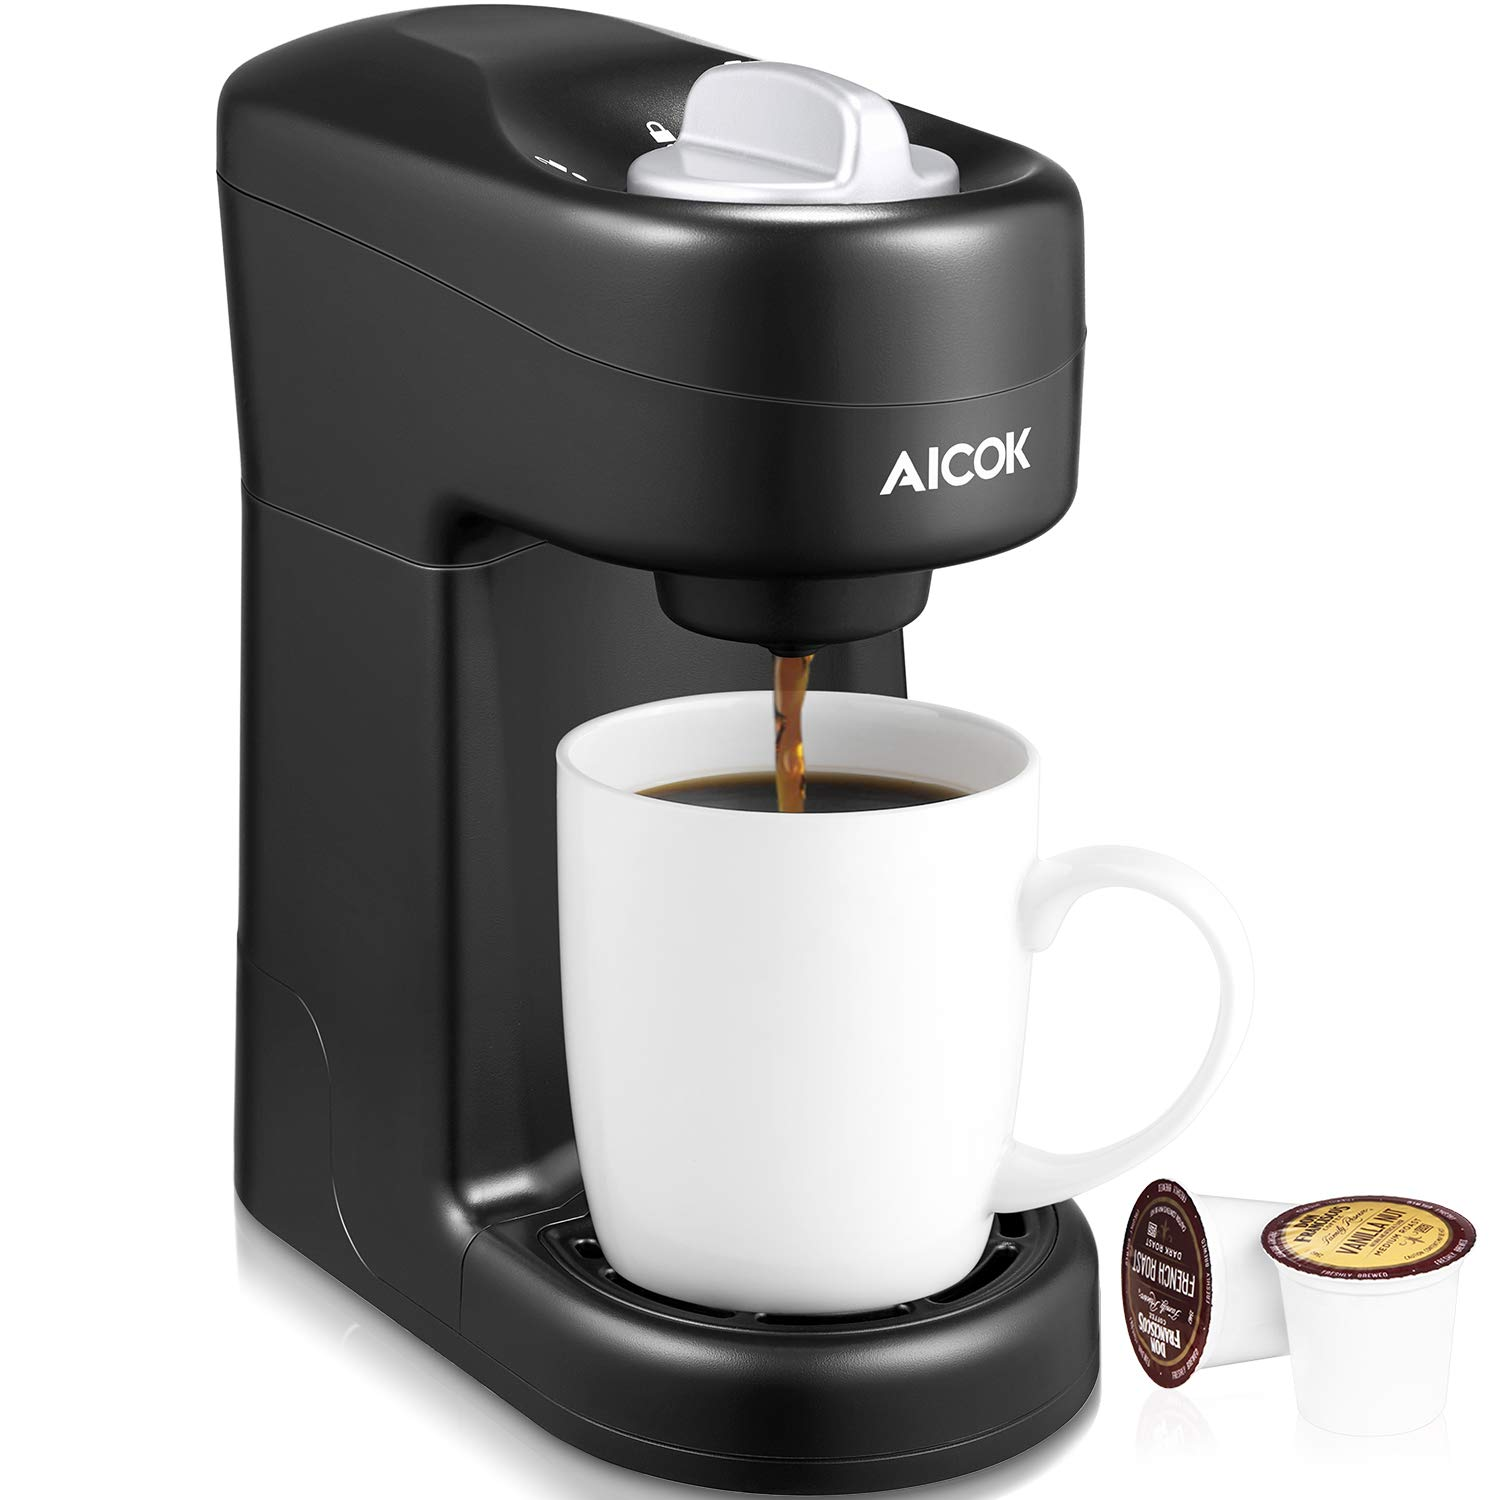 Single Serve Coffee Maker, aicokシングルカップ旅行Coffee Brewer withワンタッチボタンfor most single cup Pods including k-cupポッド、クイックBrewテクノロジー、800 W、ブラック   B079BTW3TL